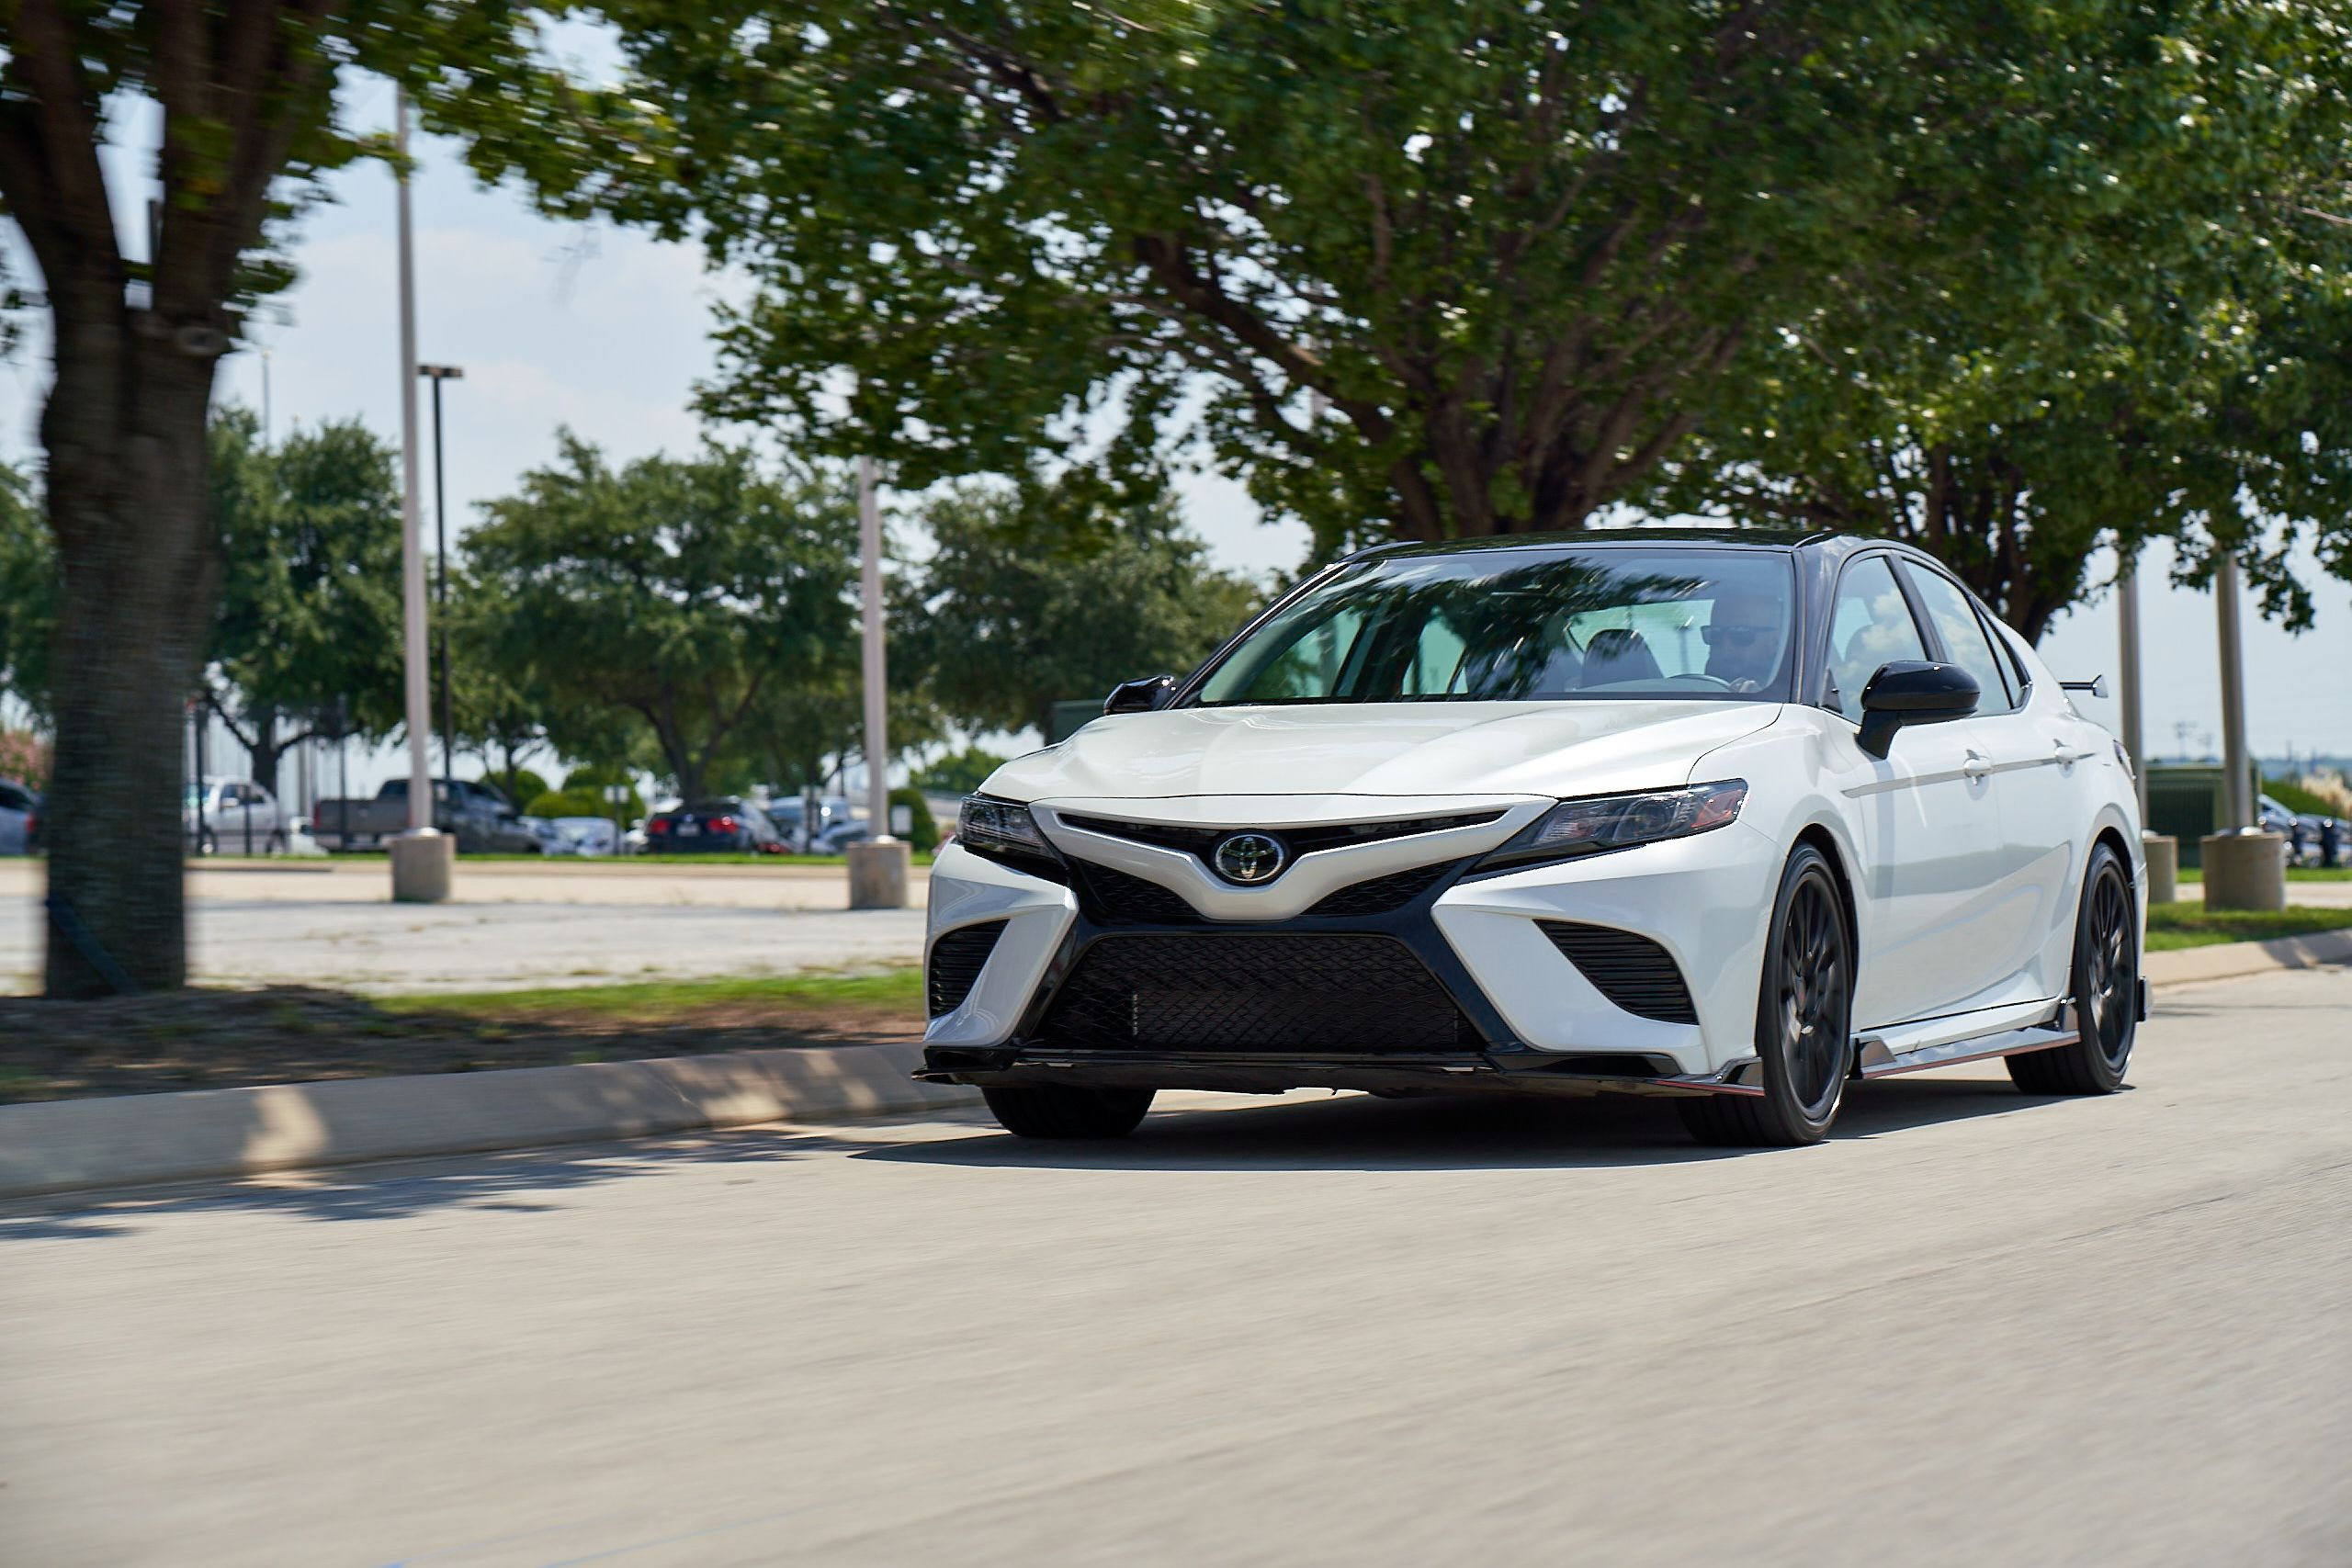 Comments on: 2020 Toyota Camry TRD Changes the Camry's Game